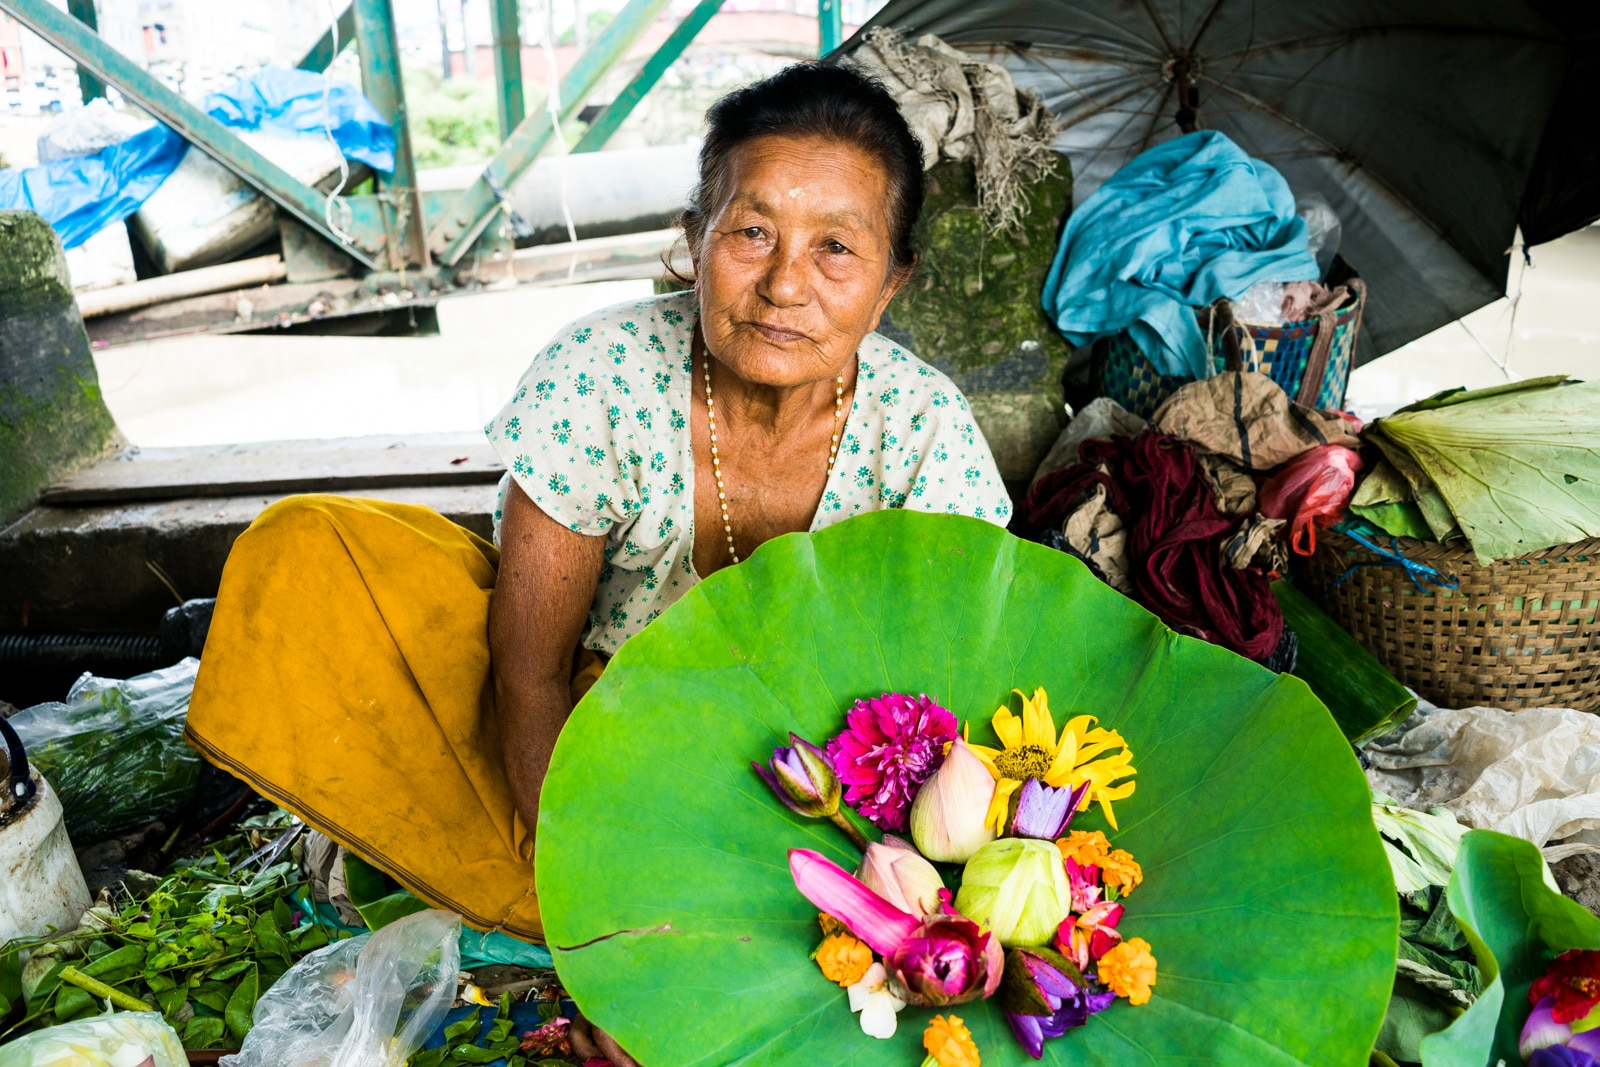 Why you need to visit Northeast India - Flower market woman in Imphal, Manipur - Lost With Purpose travel blog